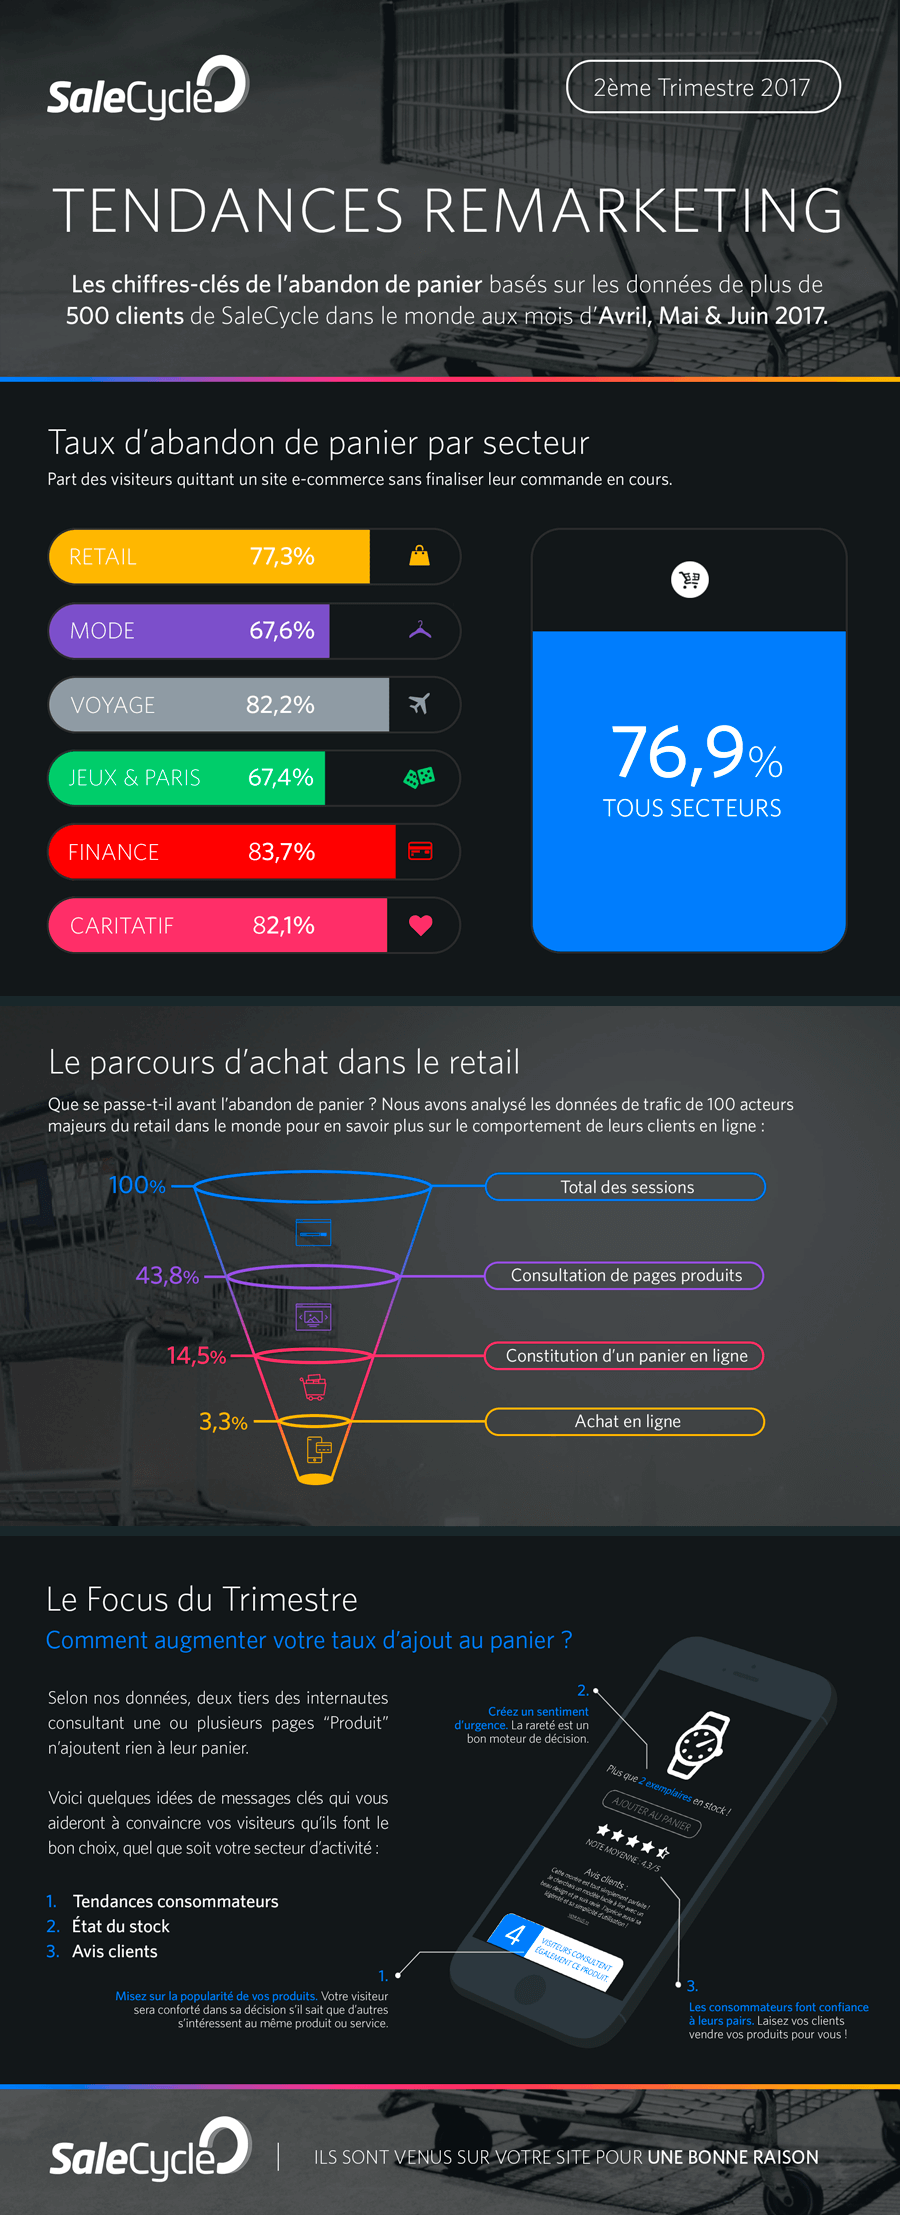 Tendances Remarketing Q2 2017